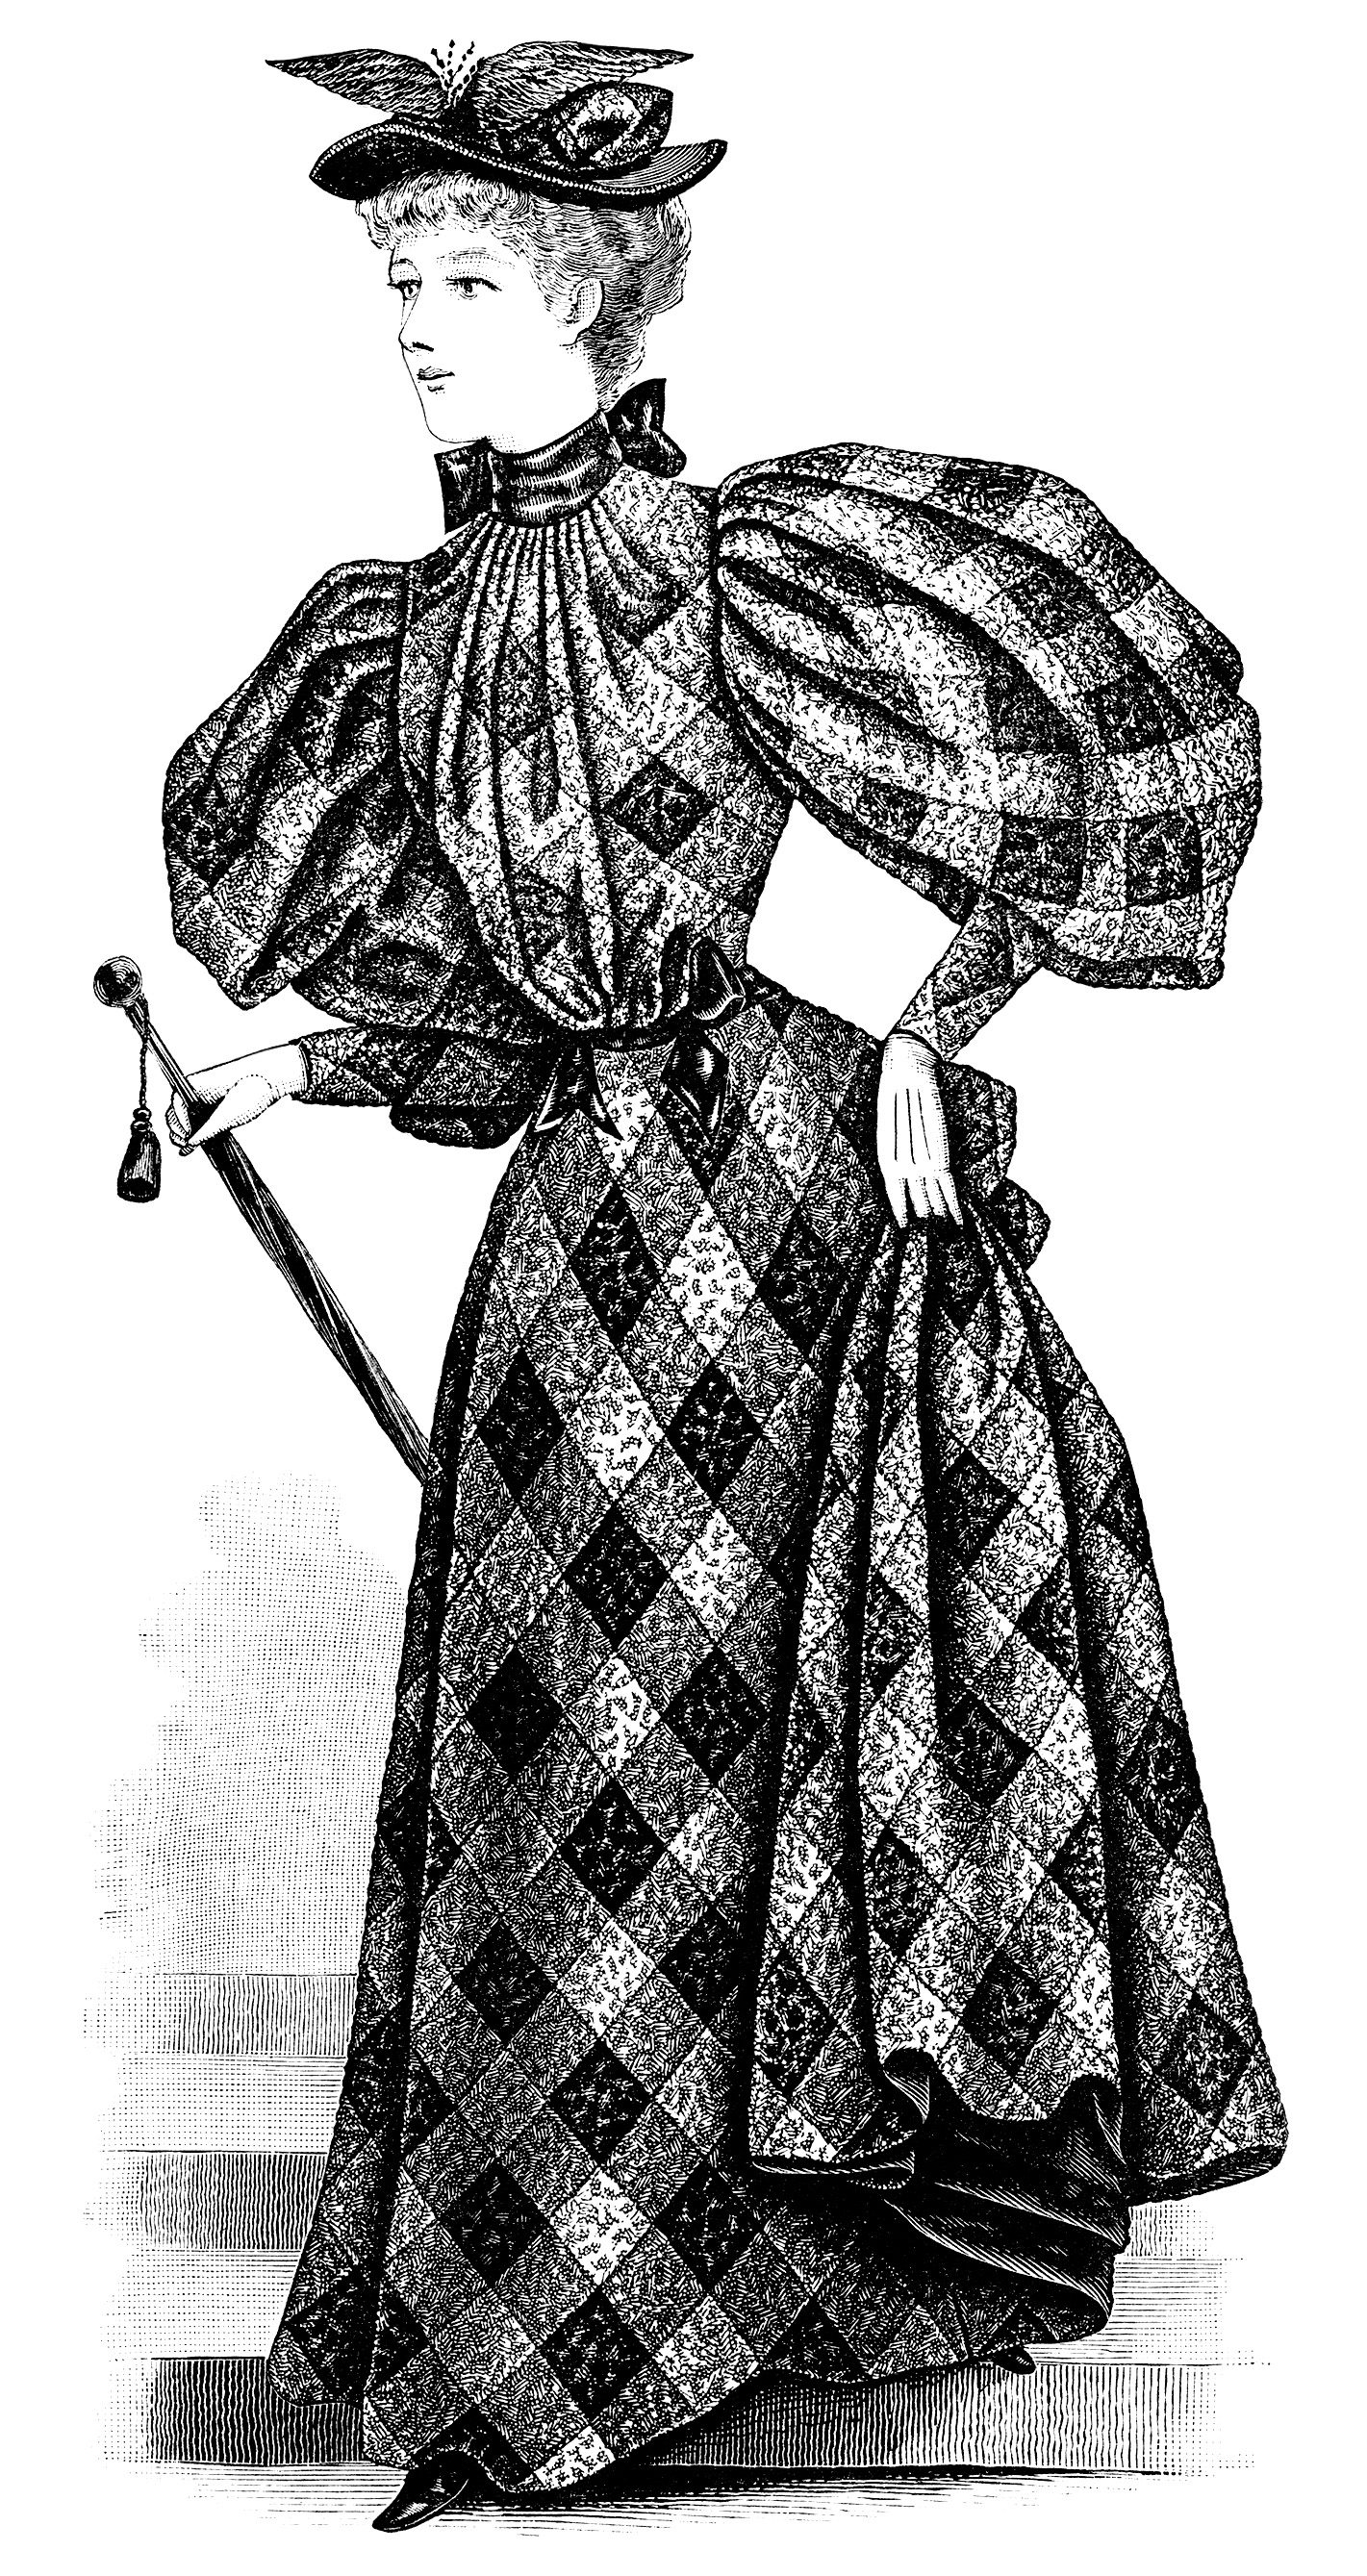 Victorian lady clip art, ladies afternoon toilette, black and white illustration, vintage woman clipart, Victorian fashion image, antique clothing graphics